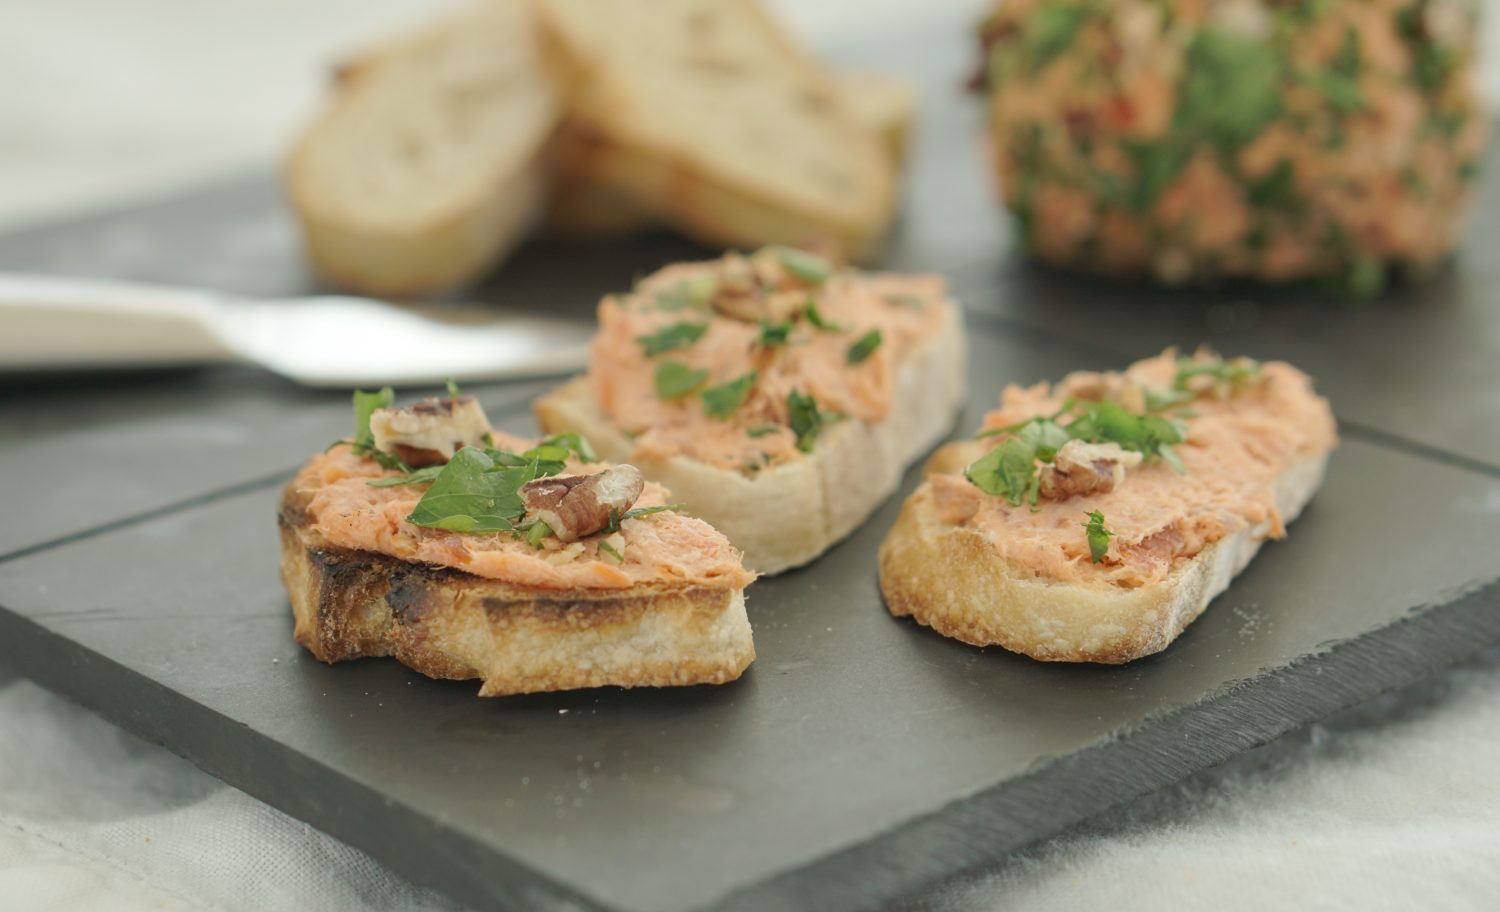 Granny's Salmon Spread & Other Easter Treats